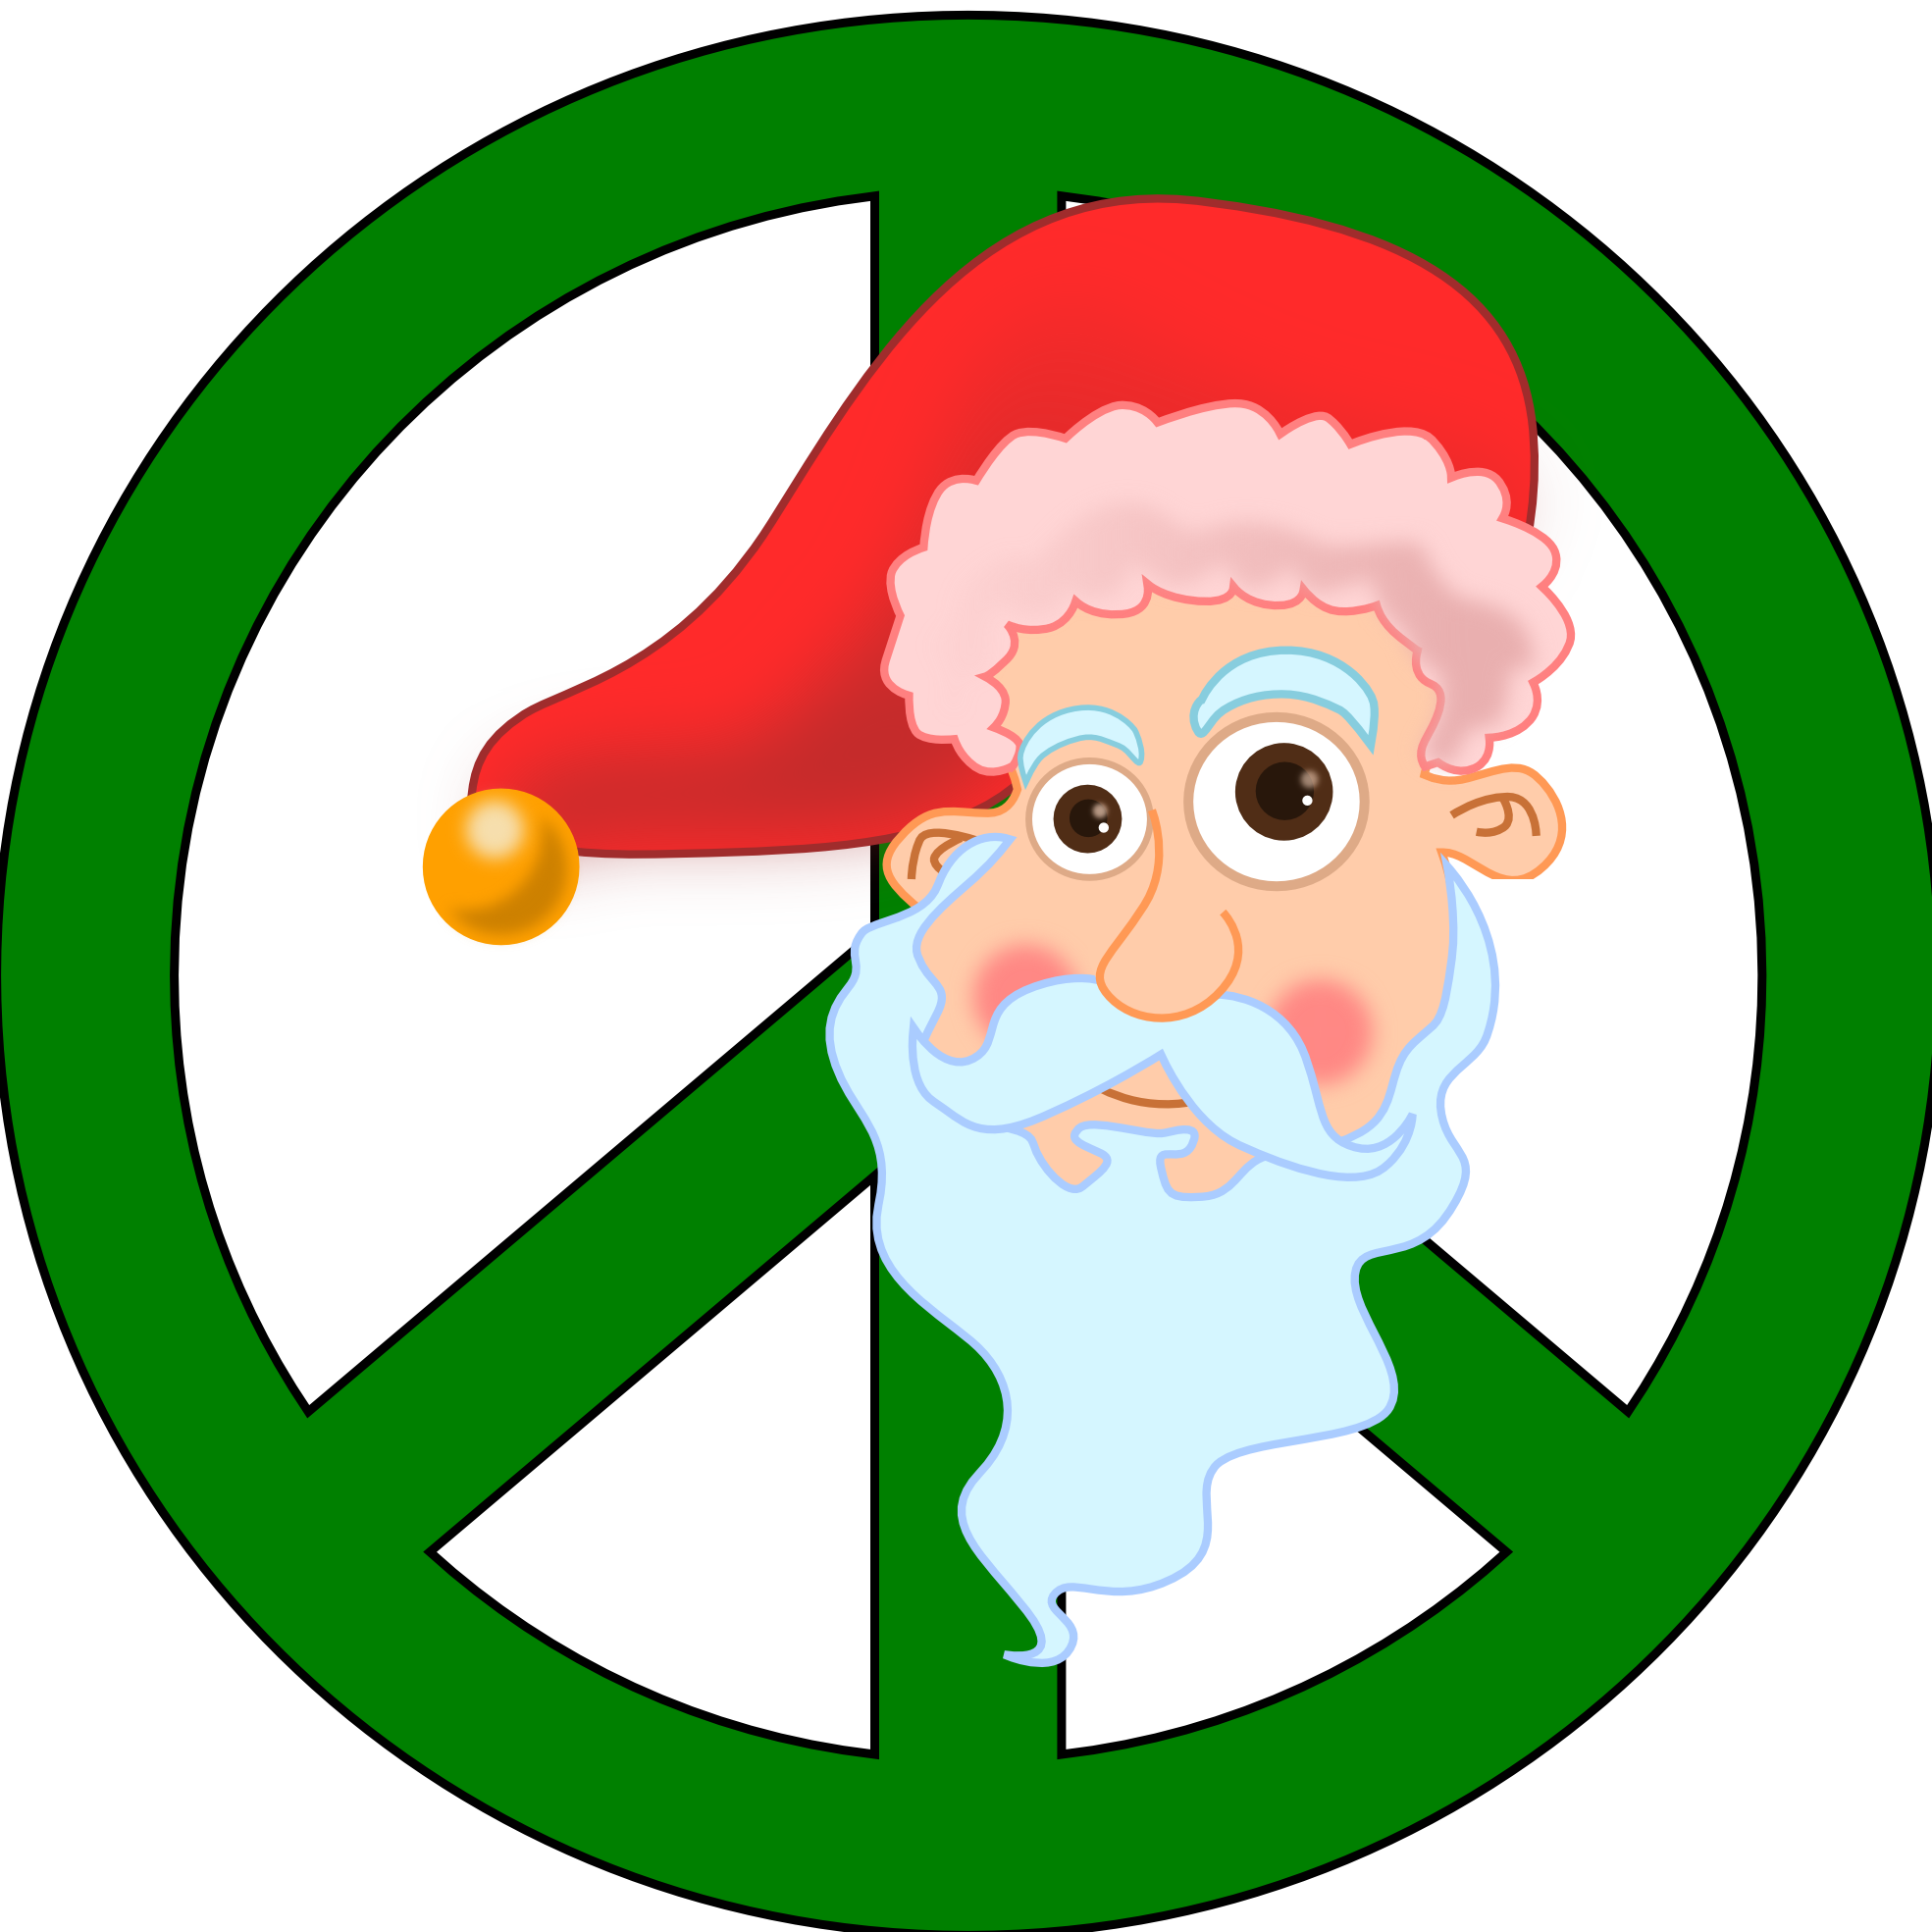 Christmas peace clip art. Crafts clipart sign